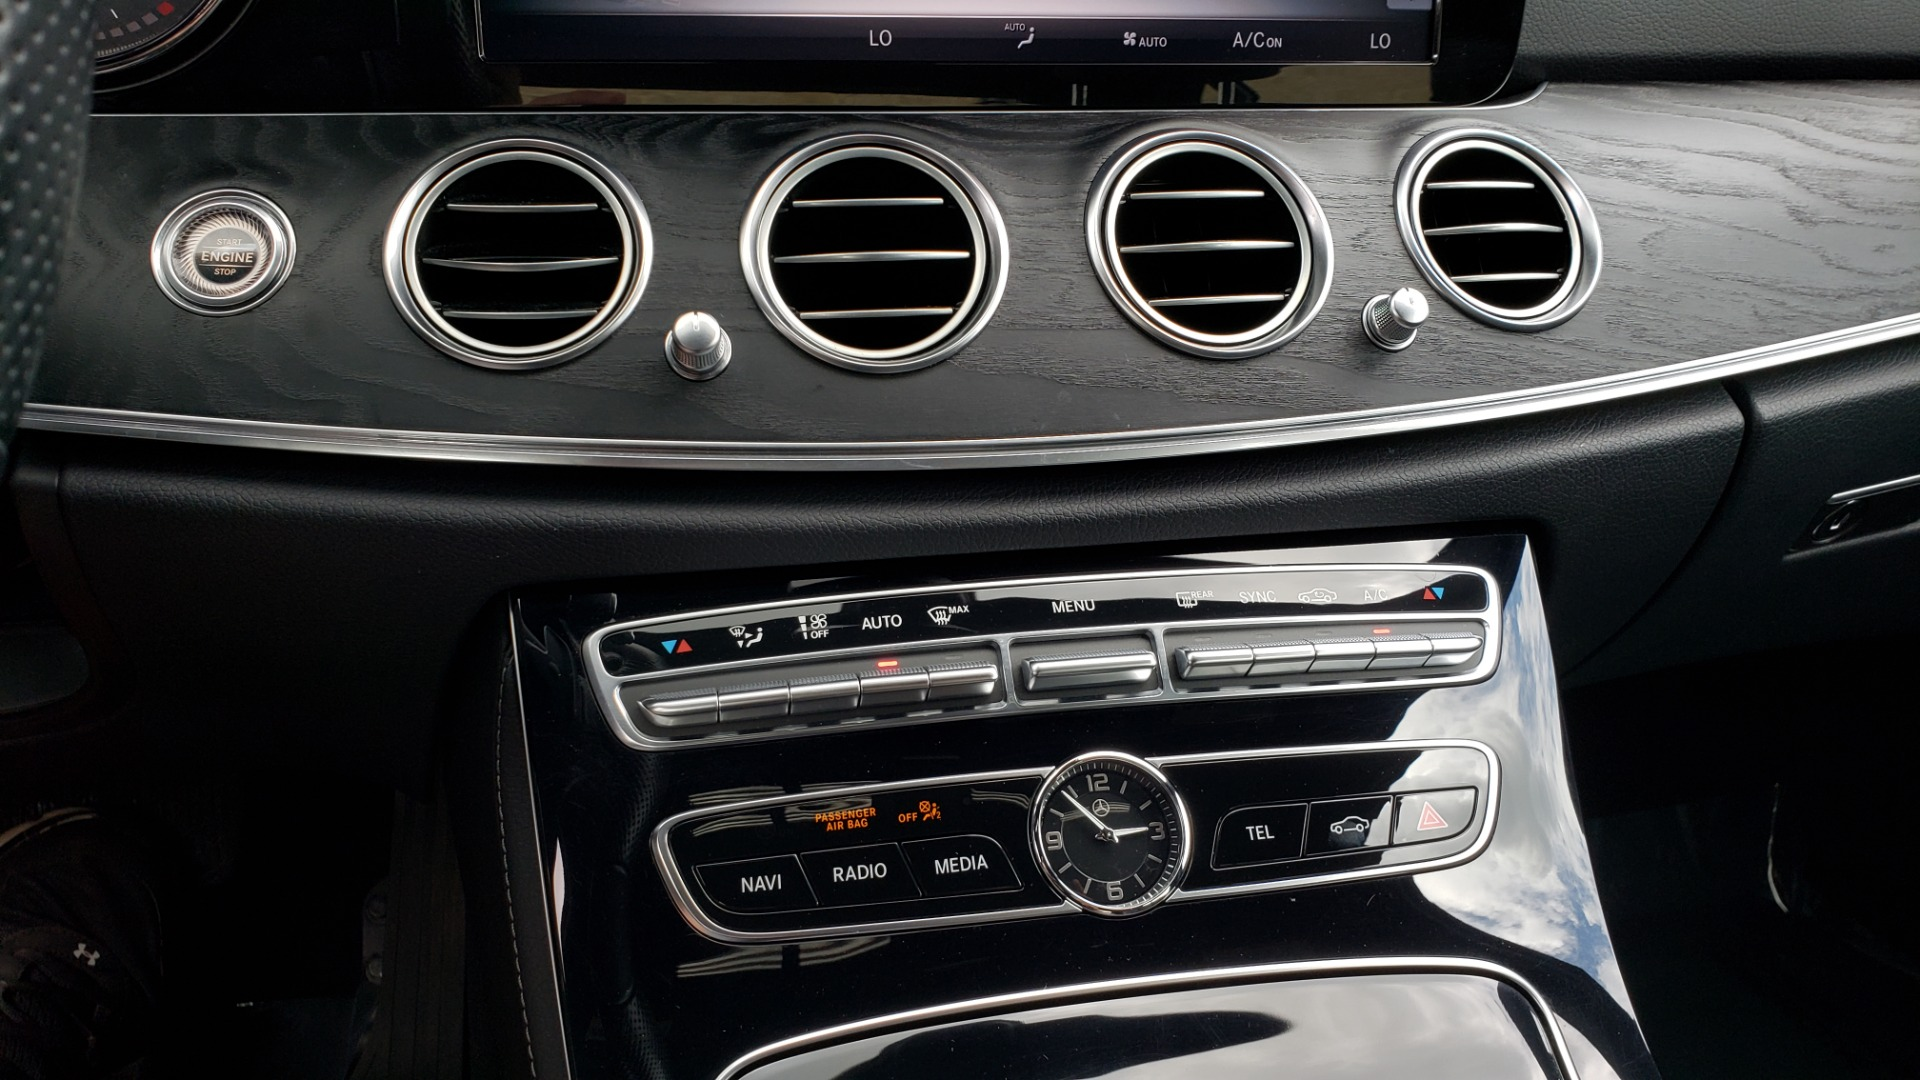 Used 2017 Mercedes-Benz E-Class E 300 4MATIC PREMIUM / SPORT / NAV / BURMESTER / HTD STS / REARVIEW for sale $30,495 at Formula Imports in Charlotte NC 28227 44